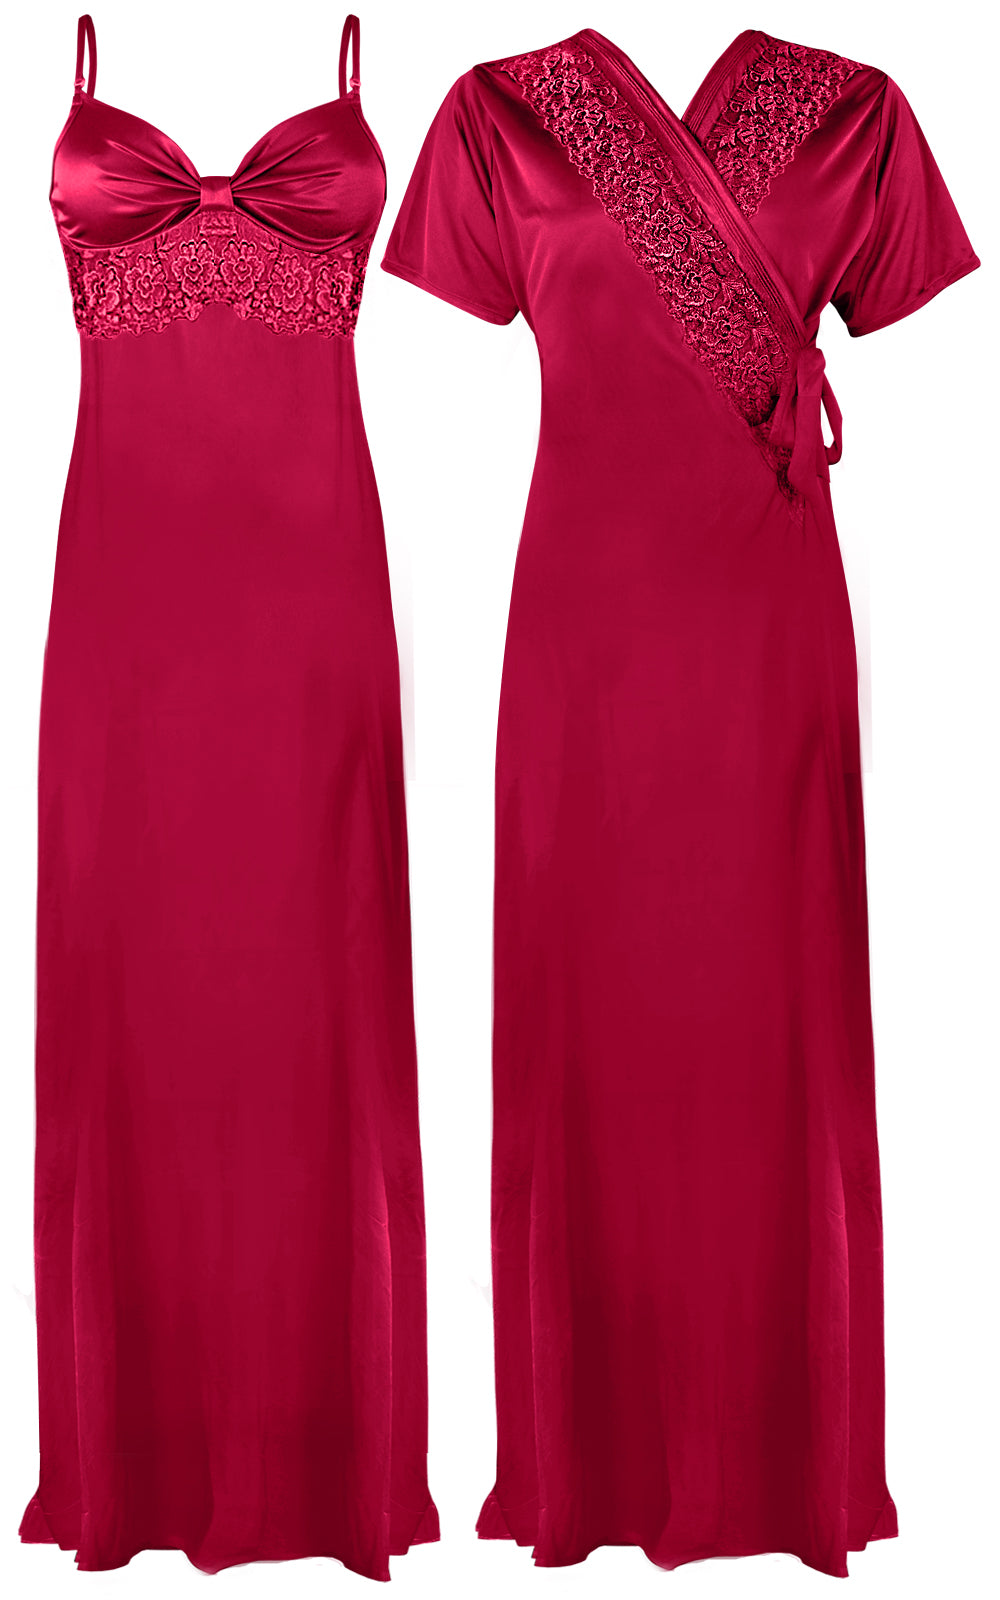 Colour: Cerise 2 Pcs Strappy Lace Long Nighty With Robe Size: One Size